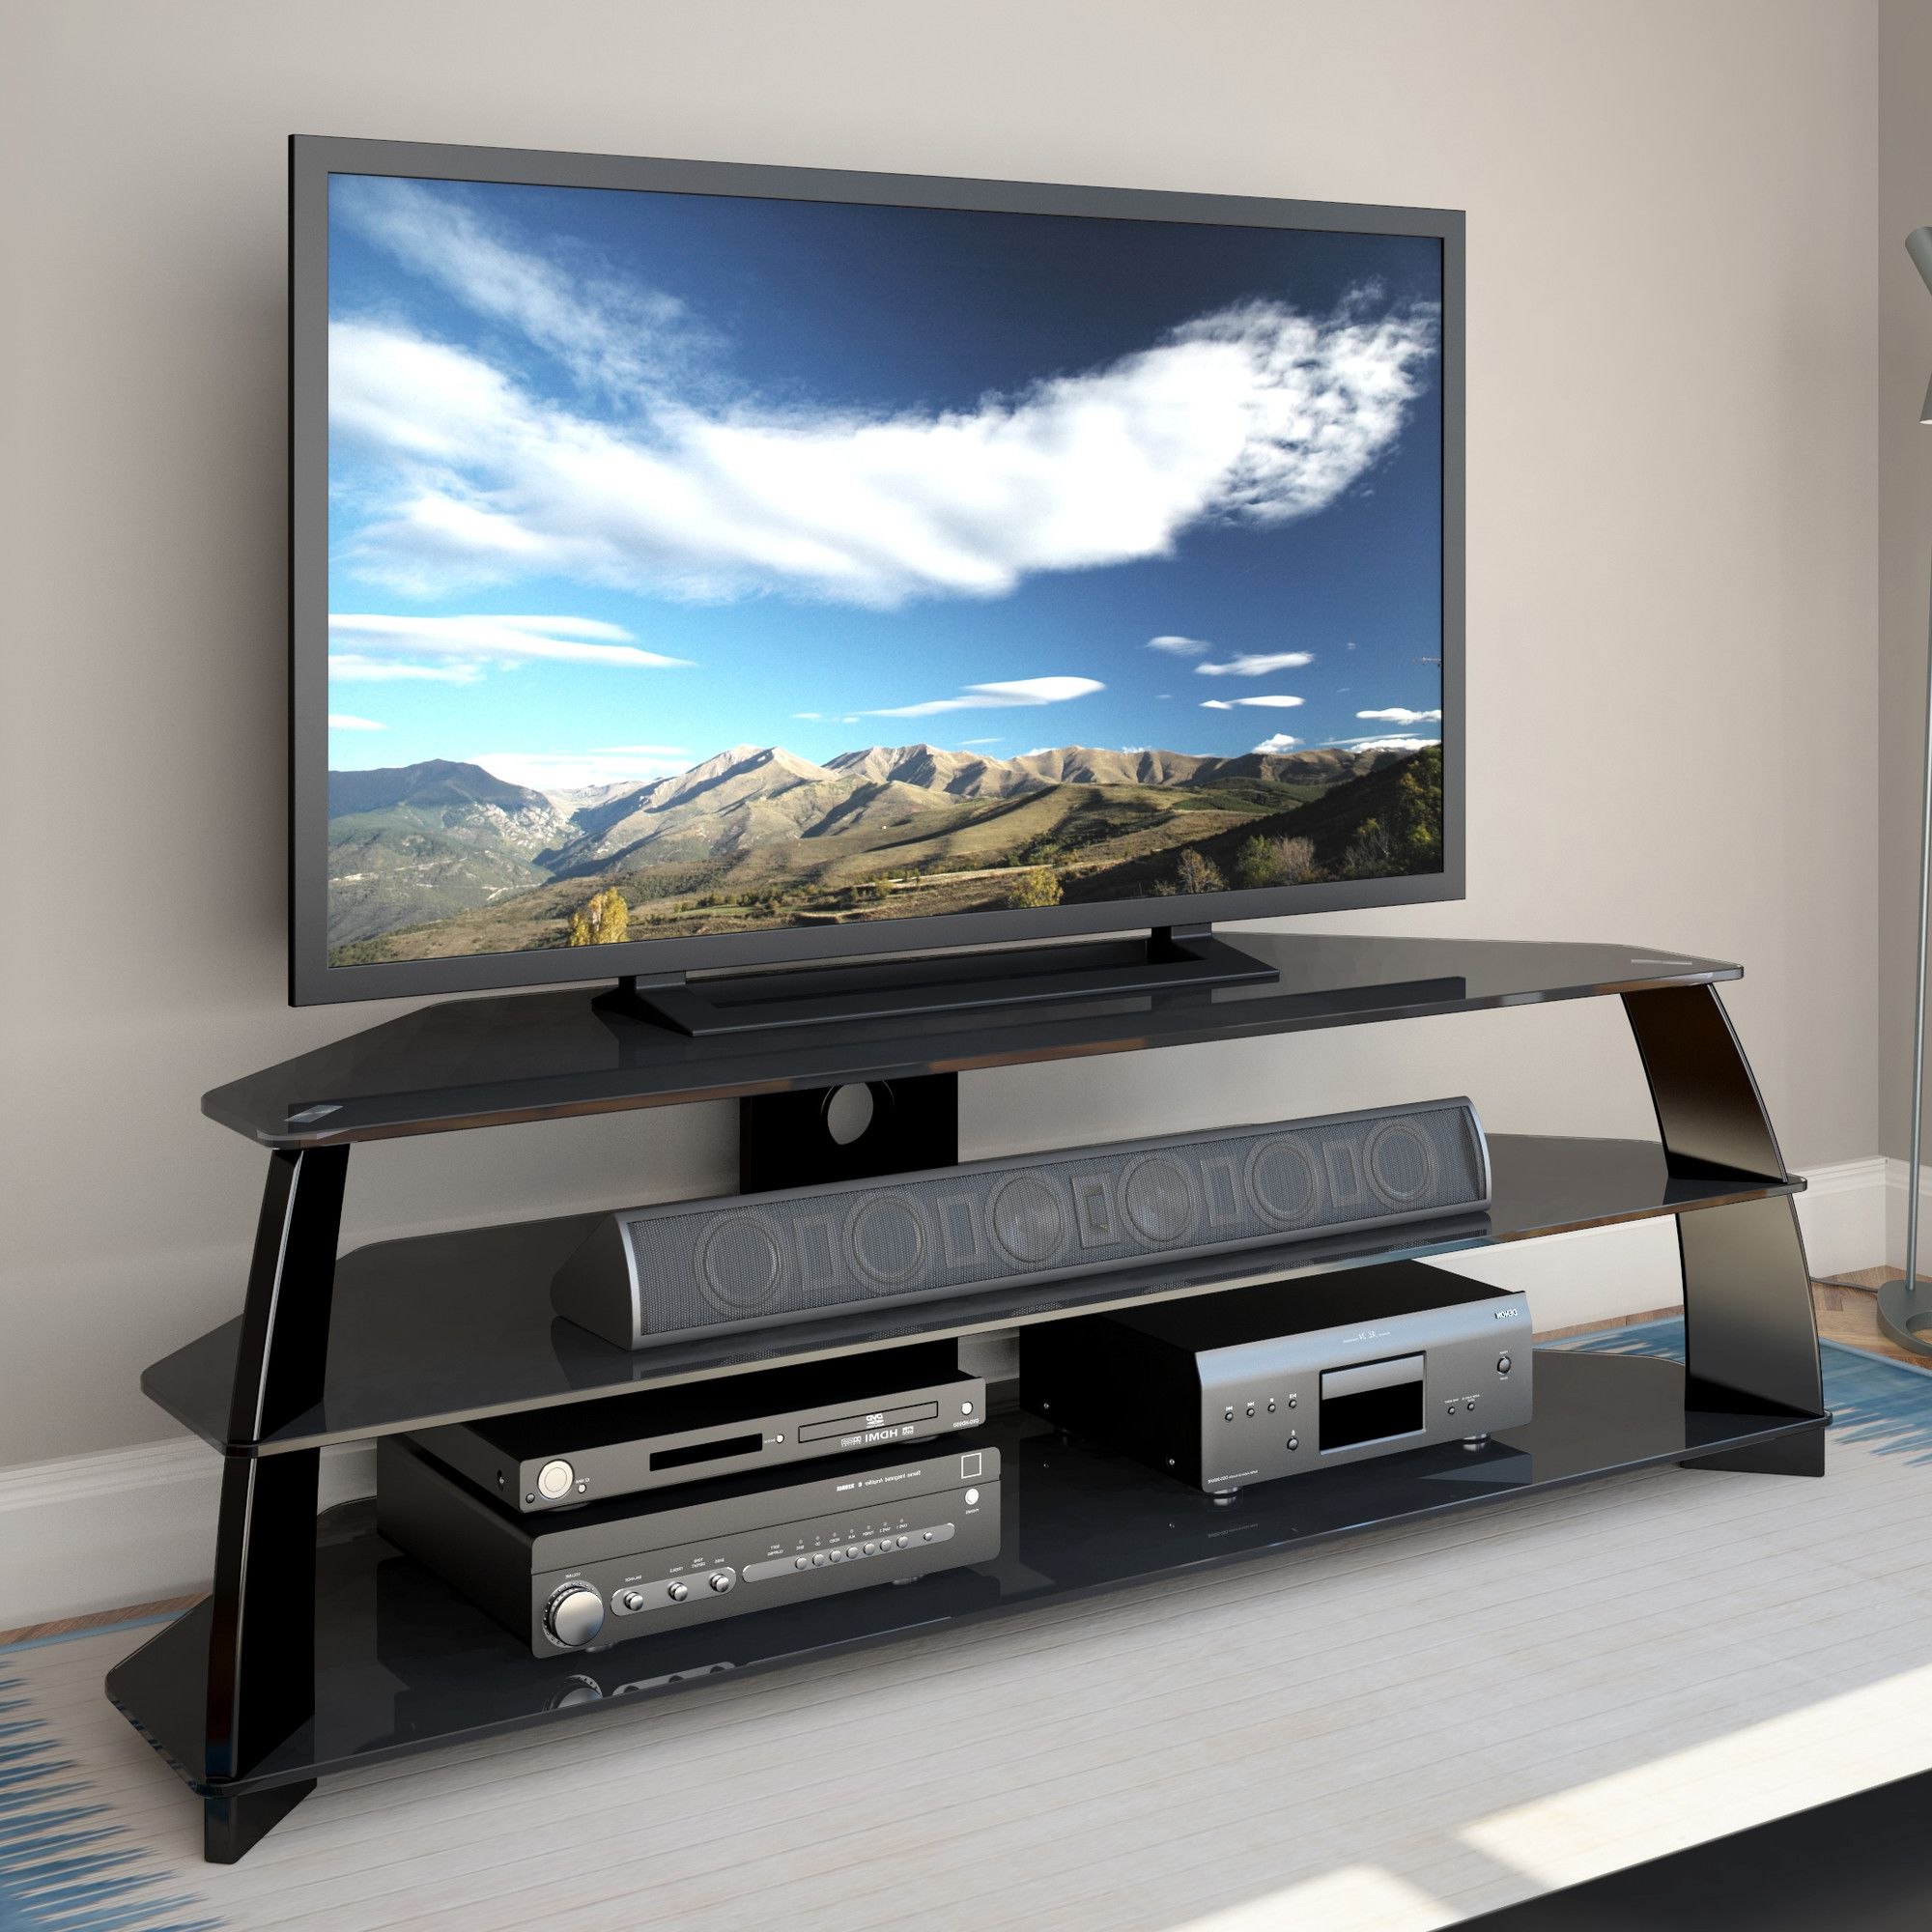 """Online Home Store For Furniture, Decor, Outdoors & More Inside Most Up To Date Valenti Tv Stands For Tvs Up To 65"""" (View 7 of 25)"""